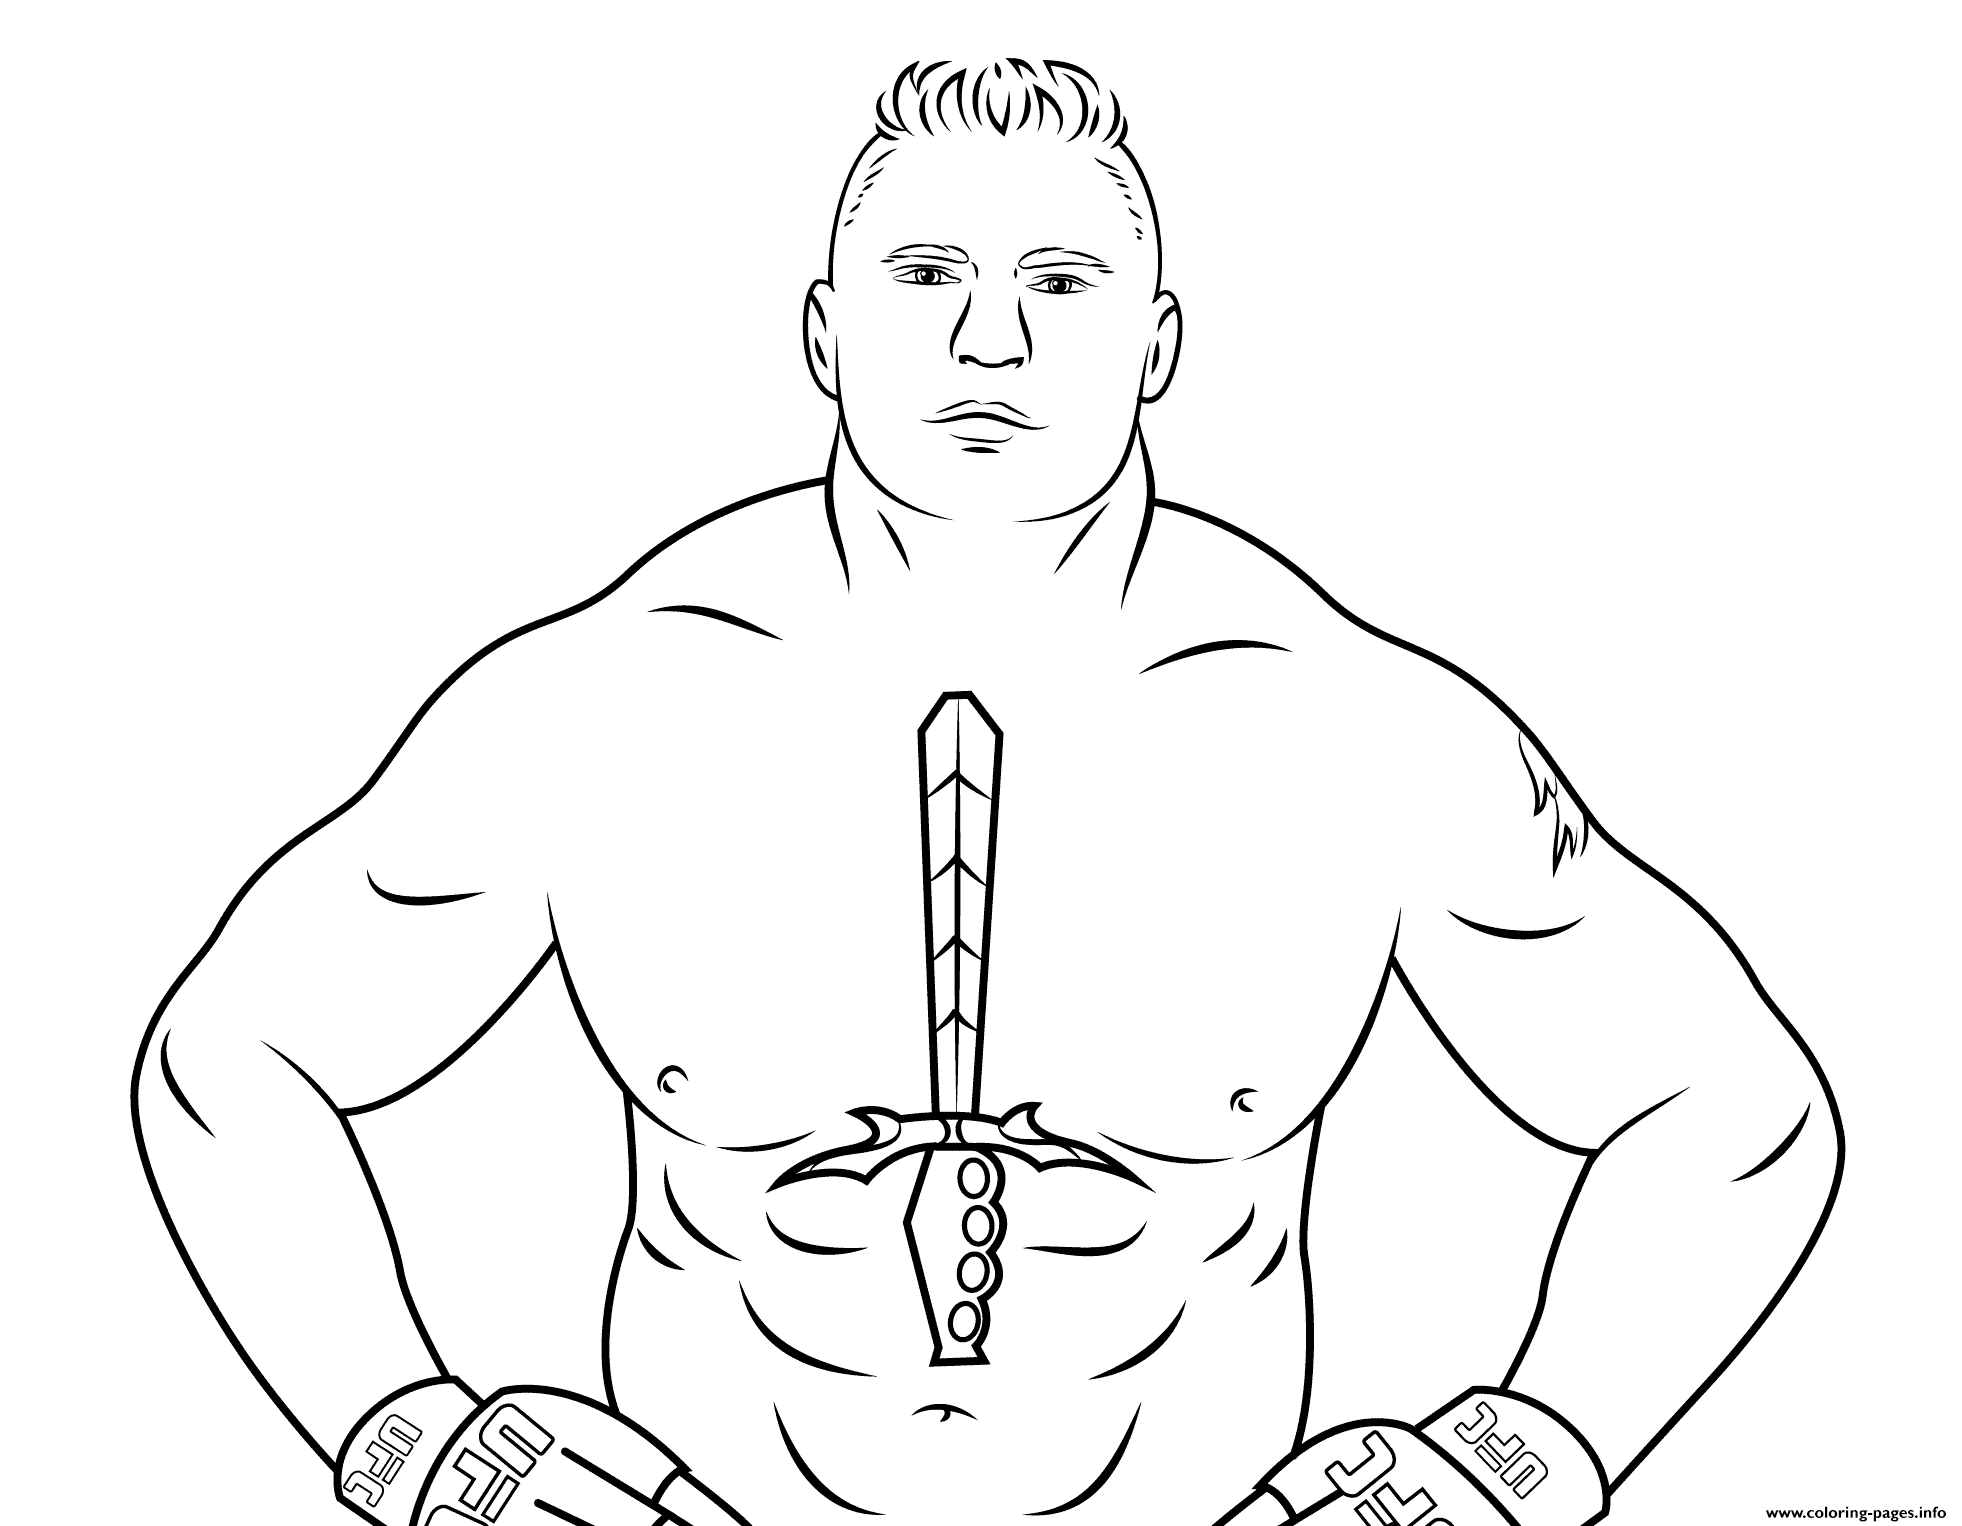 wwe brock lesnar coloring page Coloring pages Printable